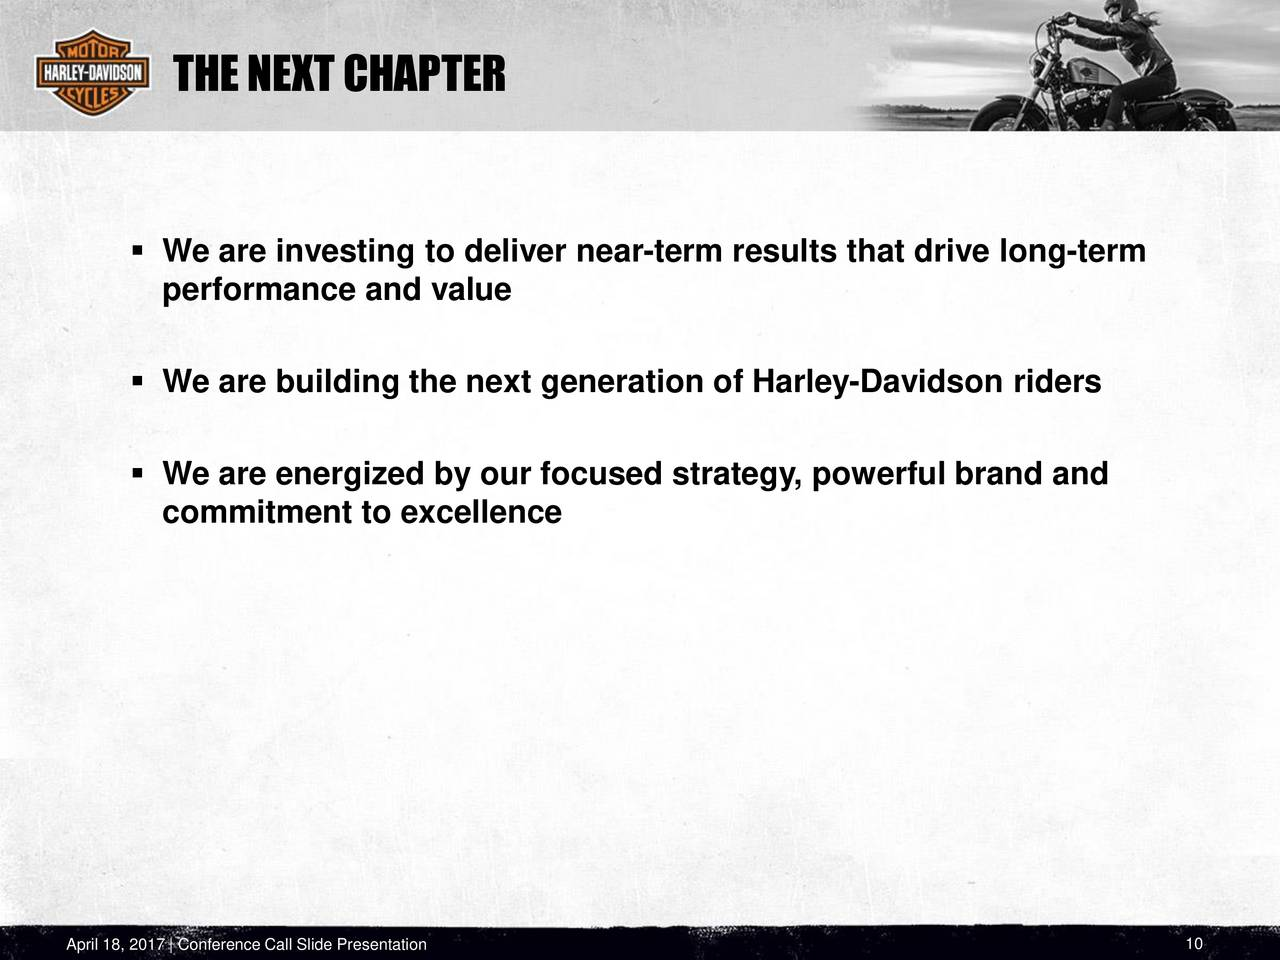 harley davidson brand building through consumer engagement Harley-davidson has been extremely good at customer engagement, constructing brand loyalty, and building a brand community the company regularly organizes and sponsors communal bike rallies, donation drives, and other social events.